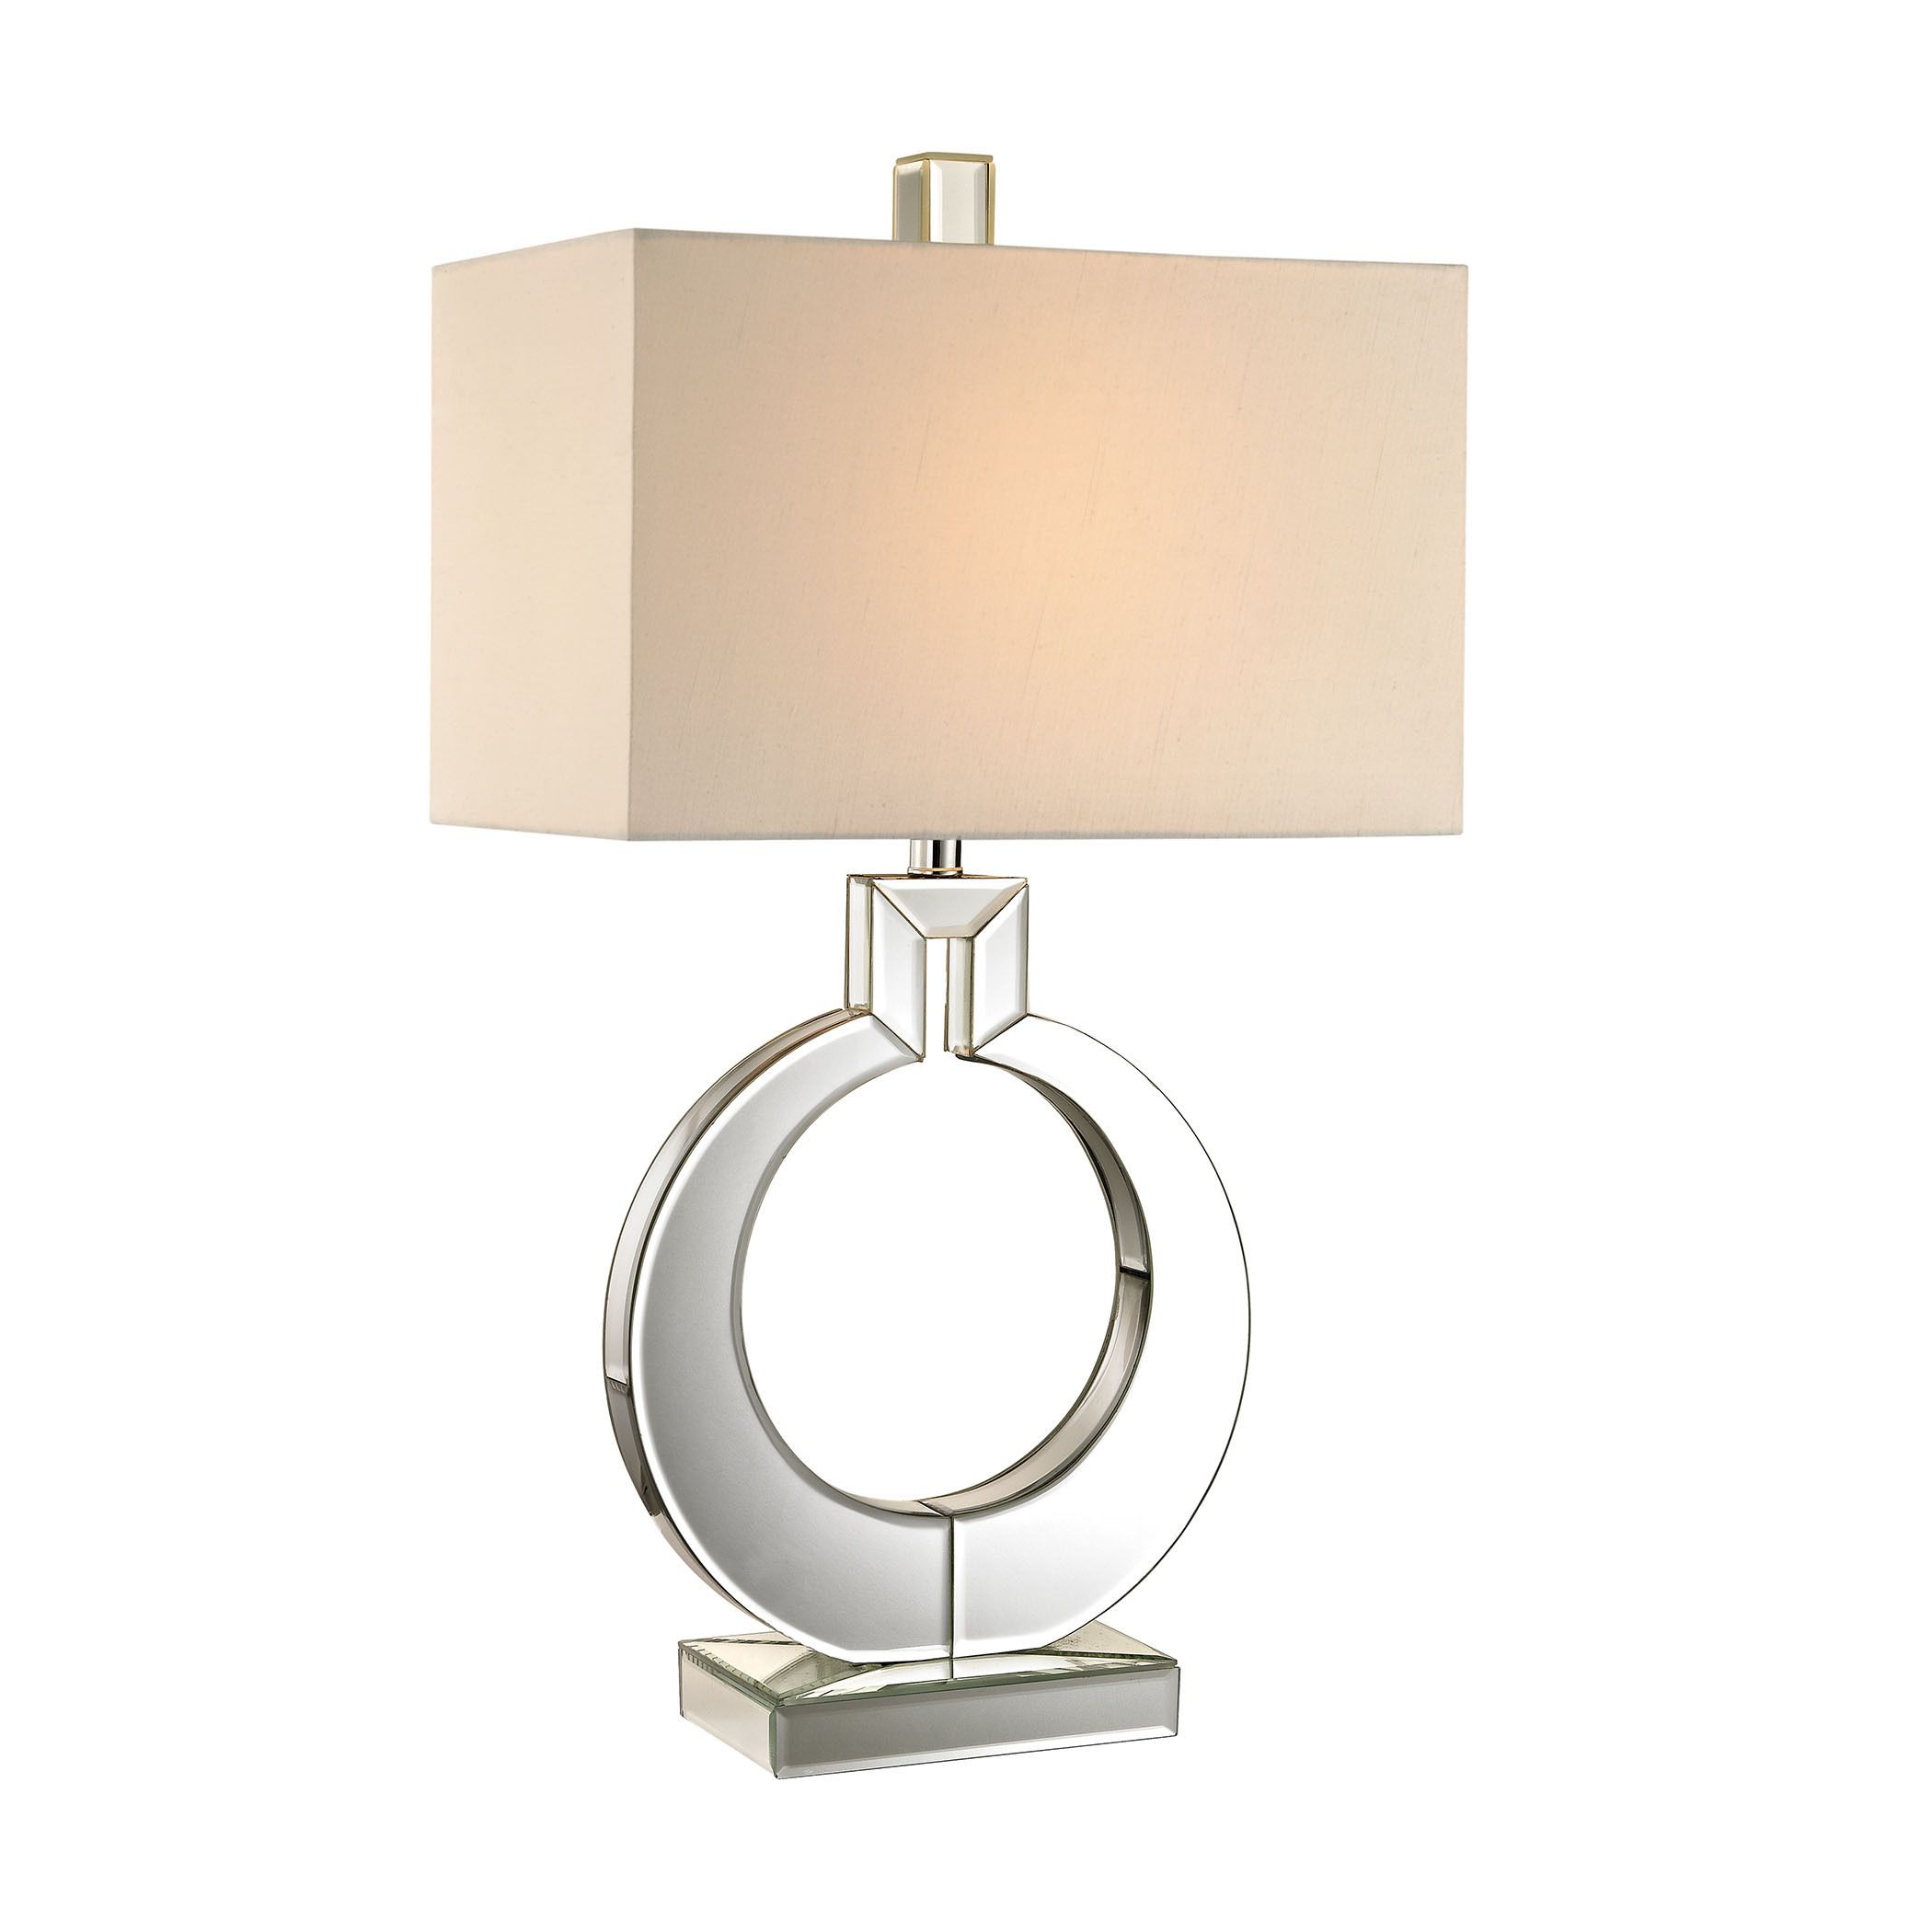 Dimond omega mirror table lamp products pinterest omega dimond omega mirror table lamp geotapseo Images